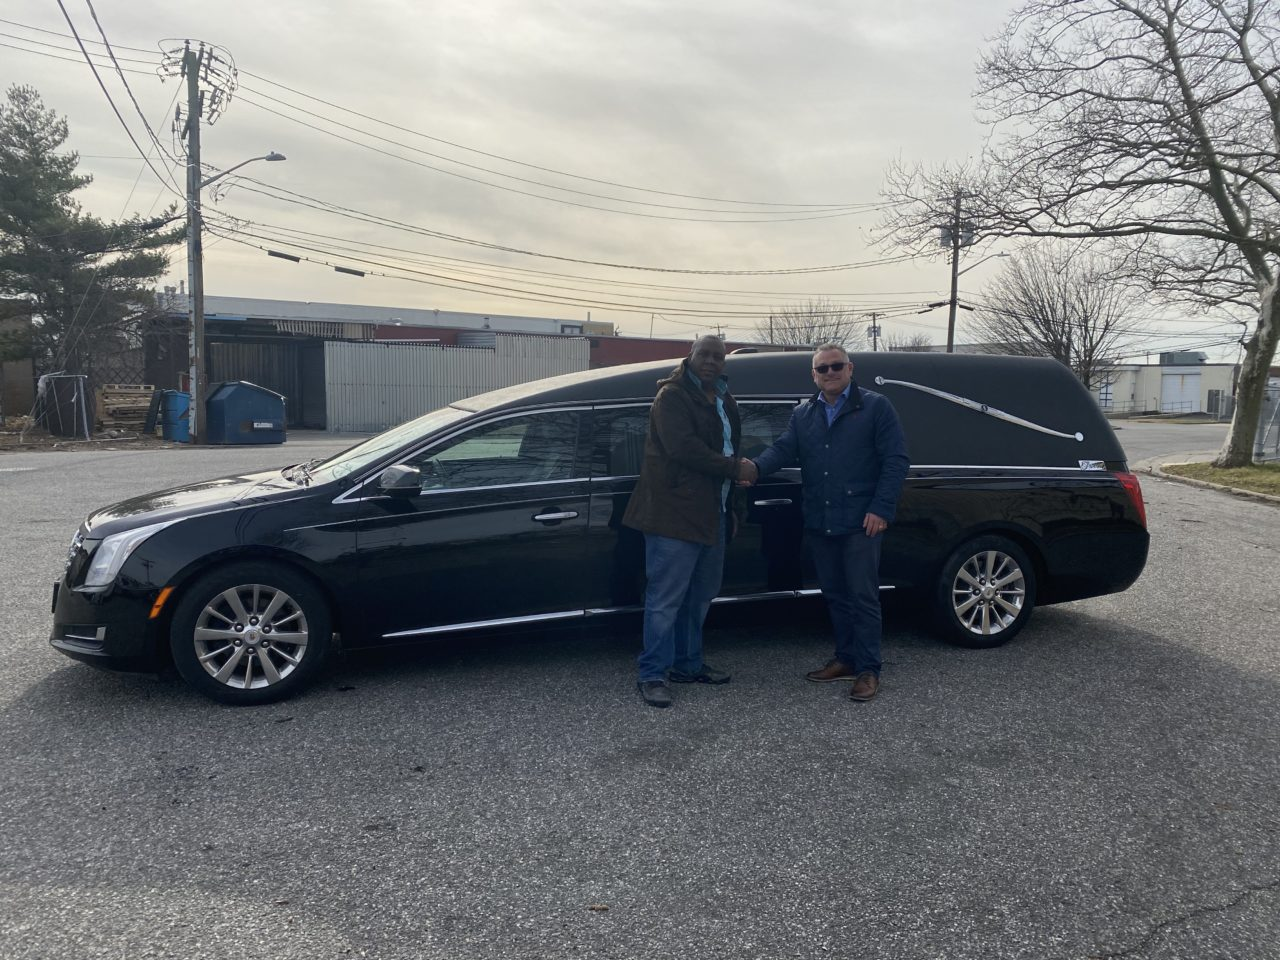 NEW DELIVERY: 2015 Cadillac Hearse Delivered to St. Rose Funeral Services LTD